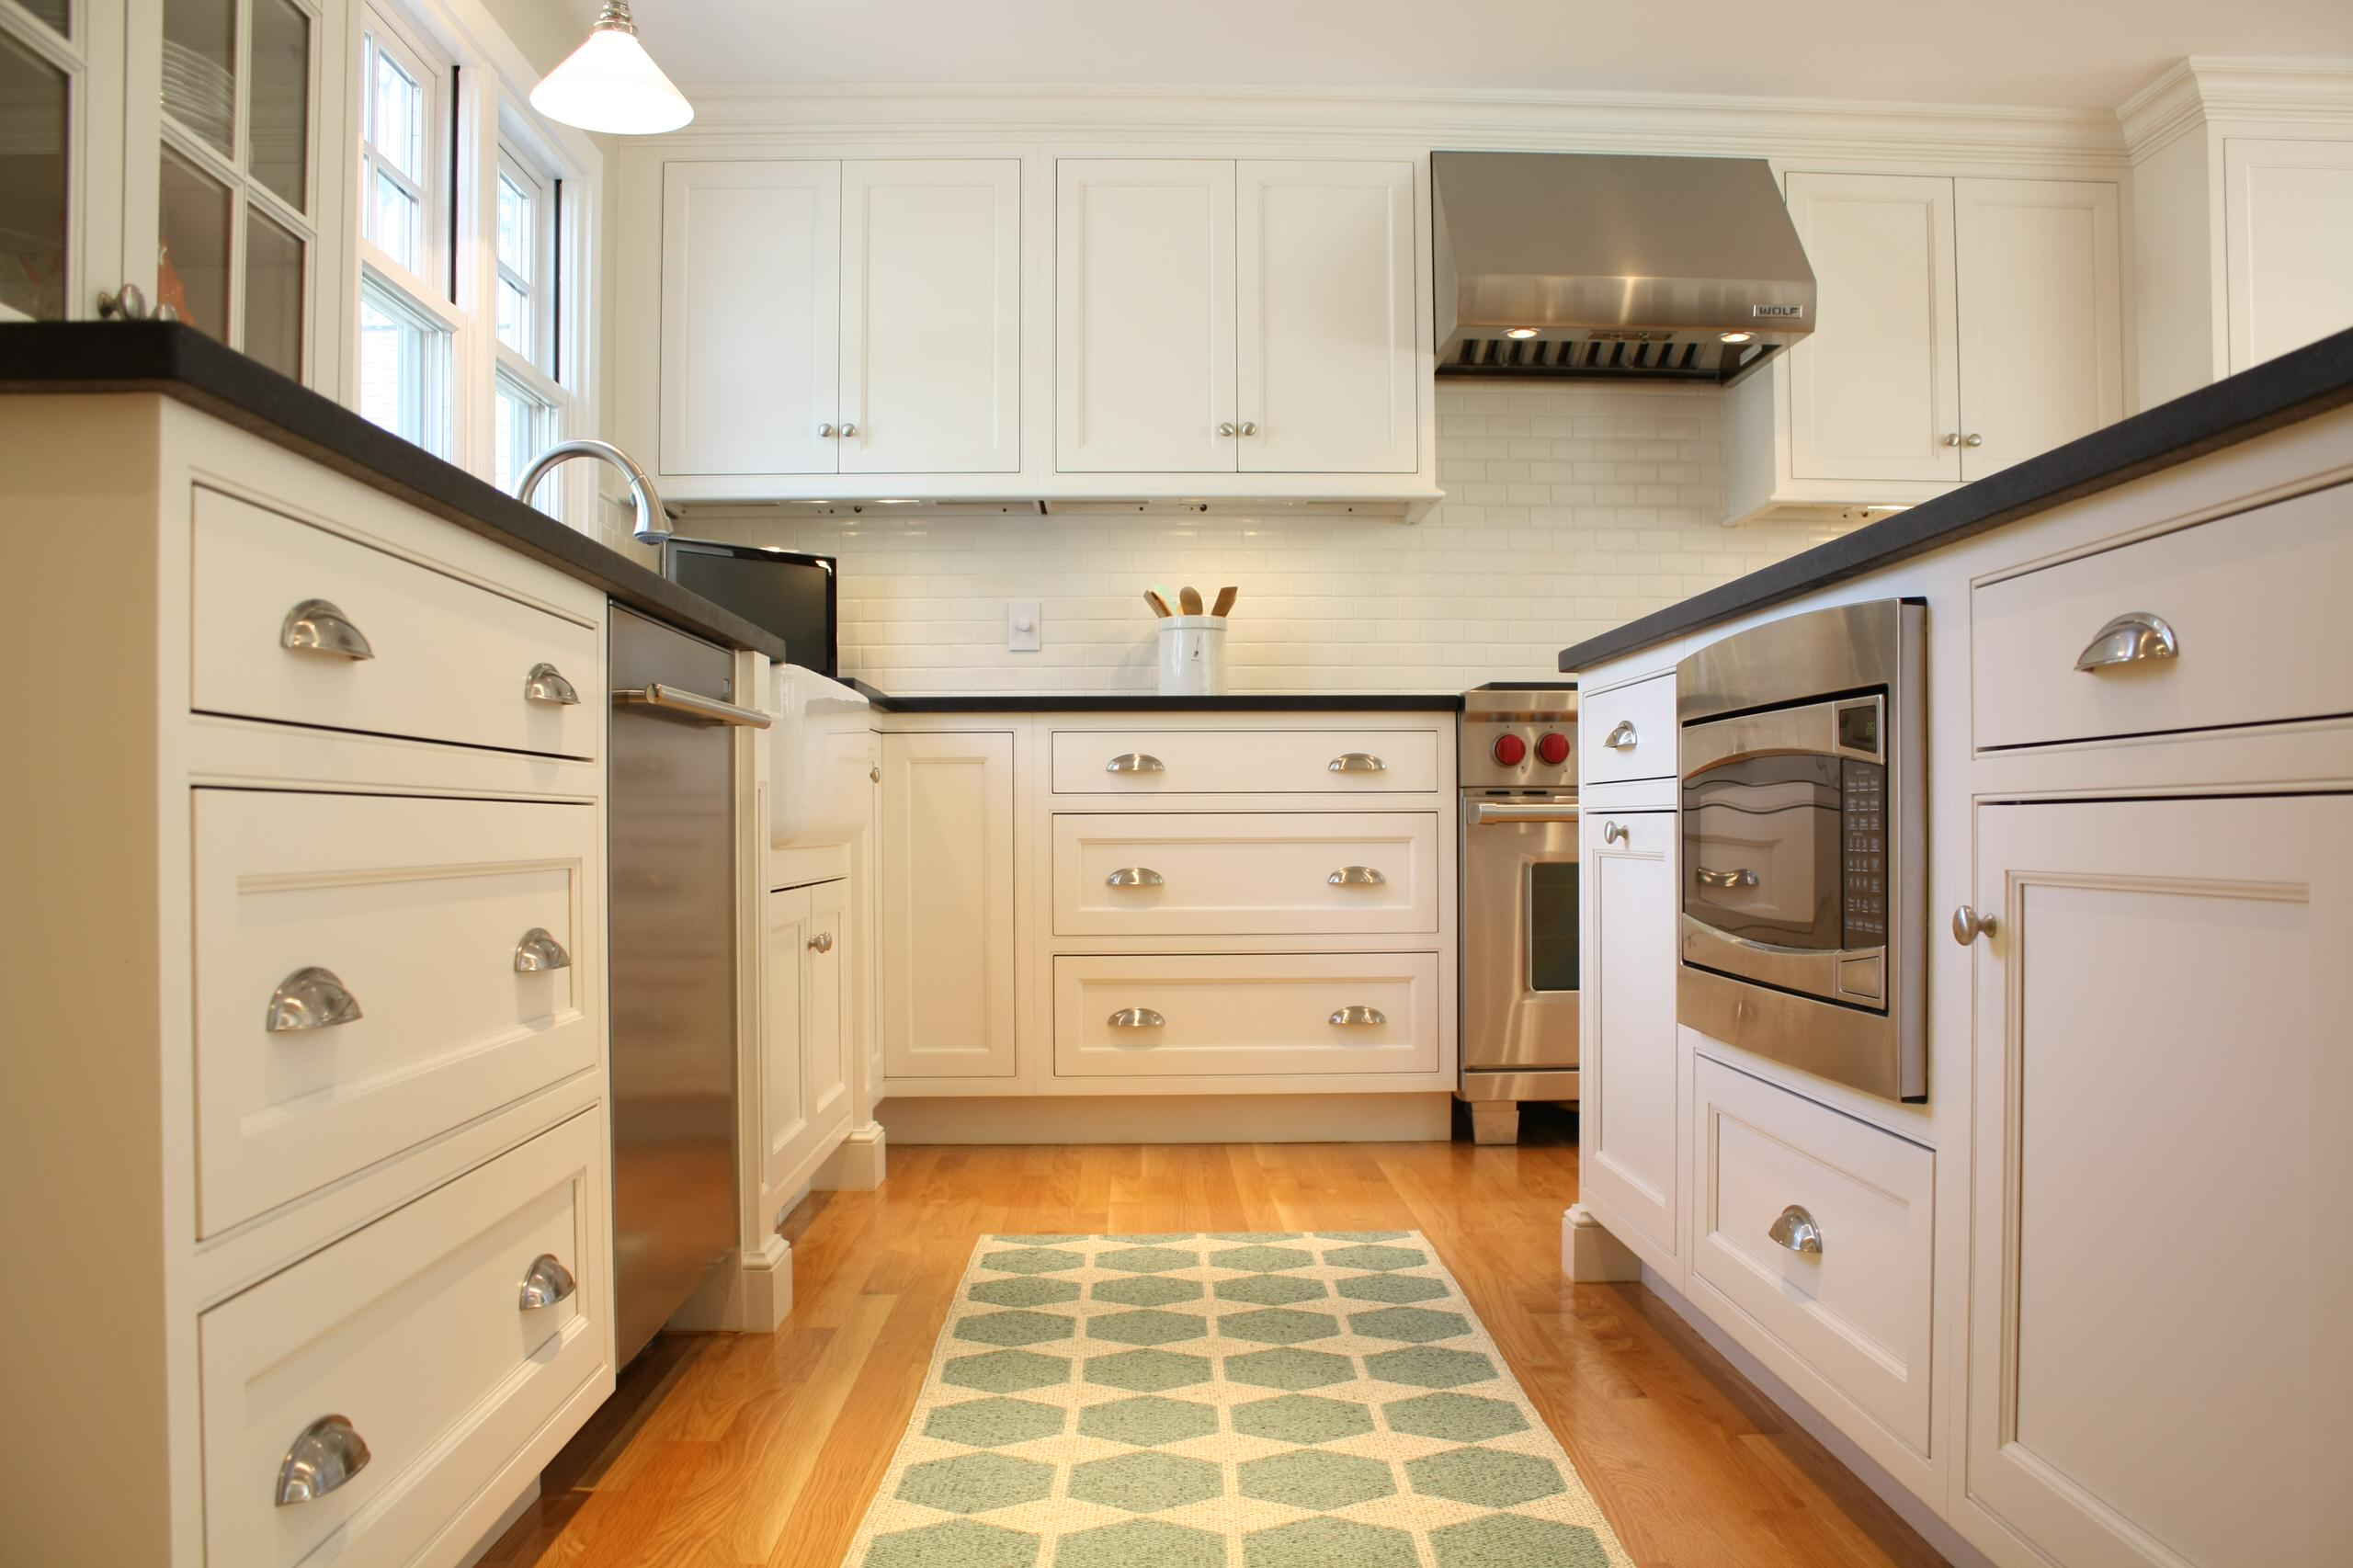 ge spacemaker microwave houzz